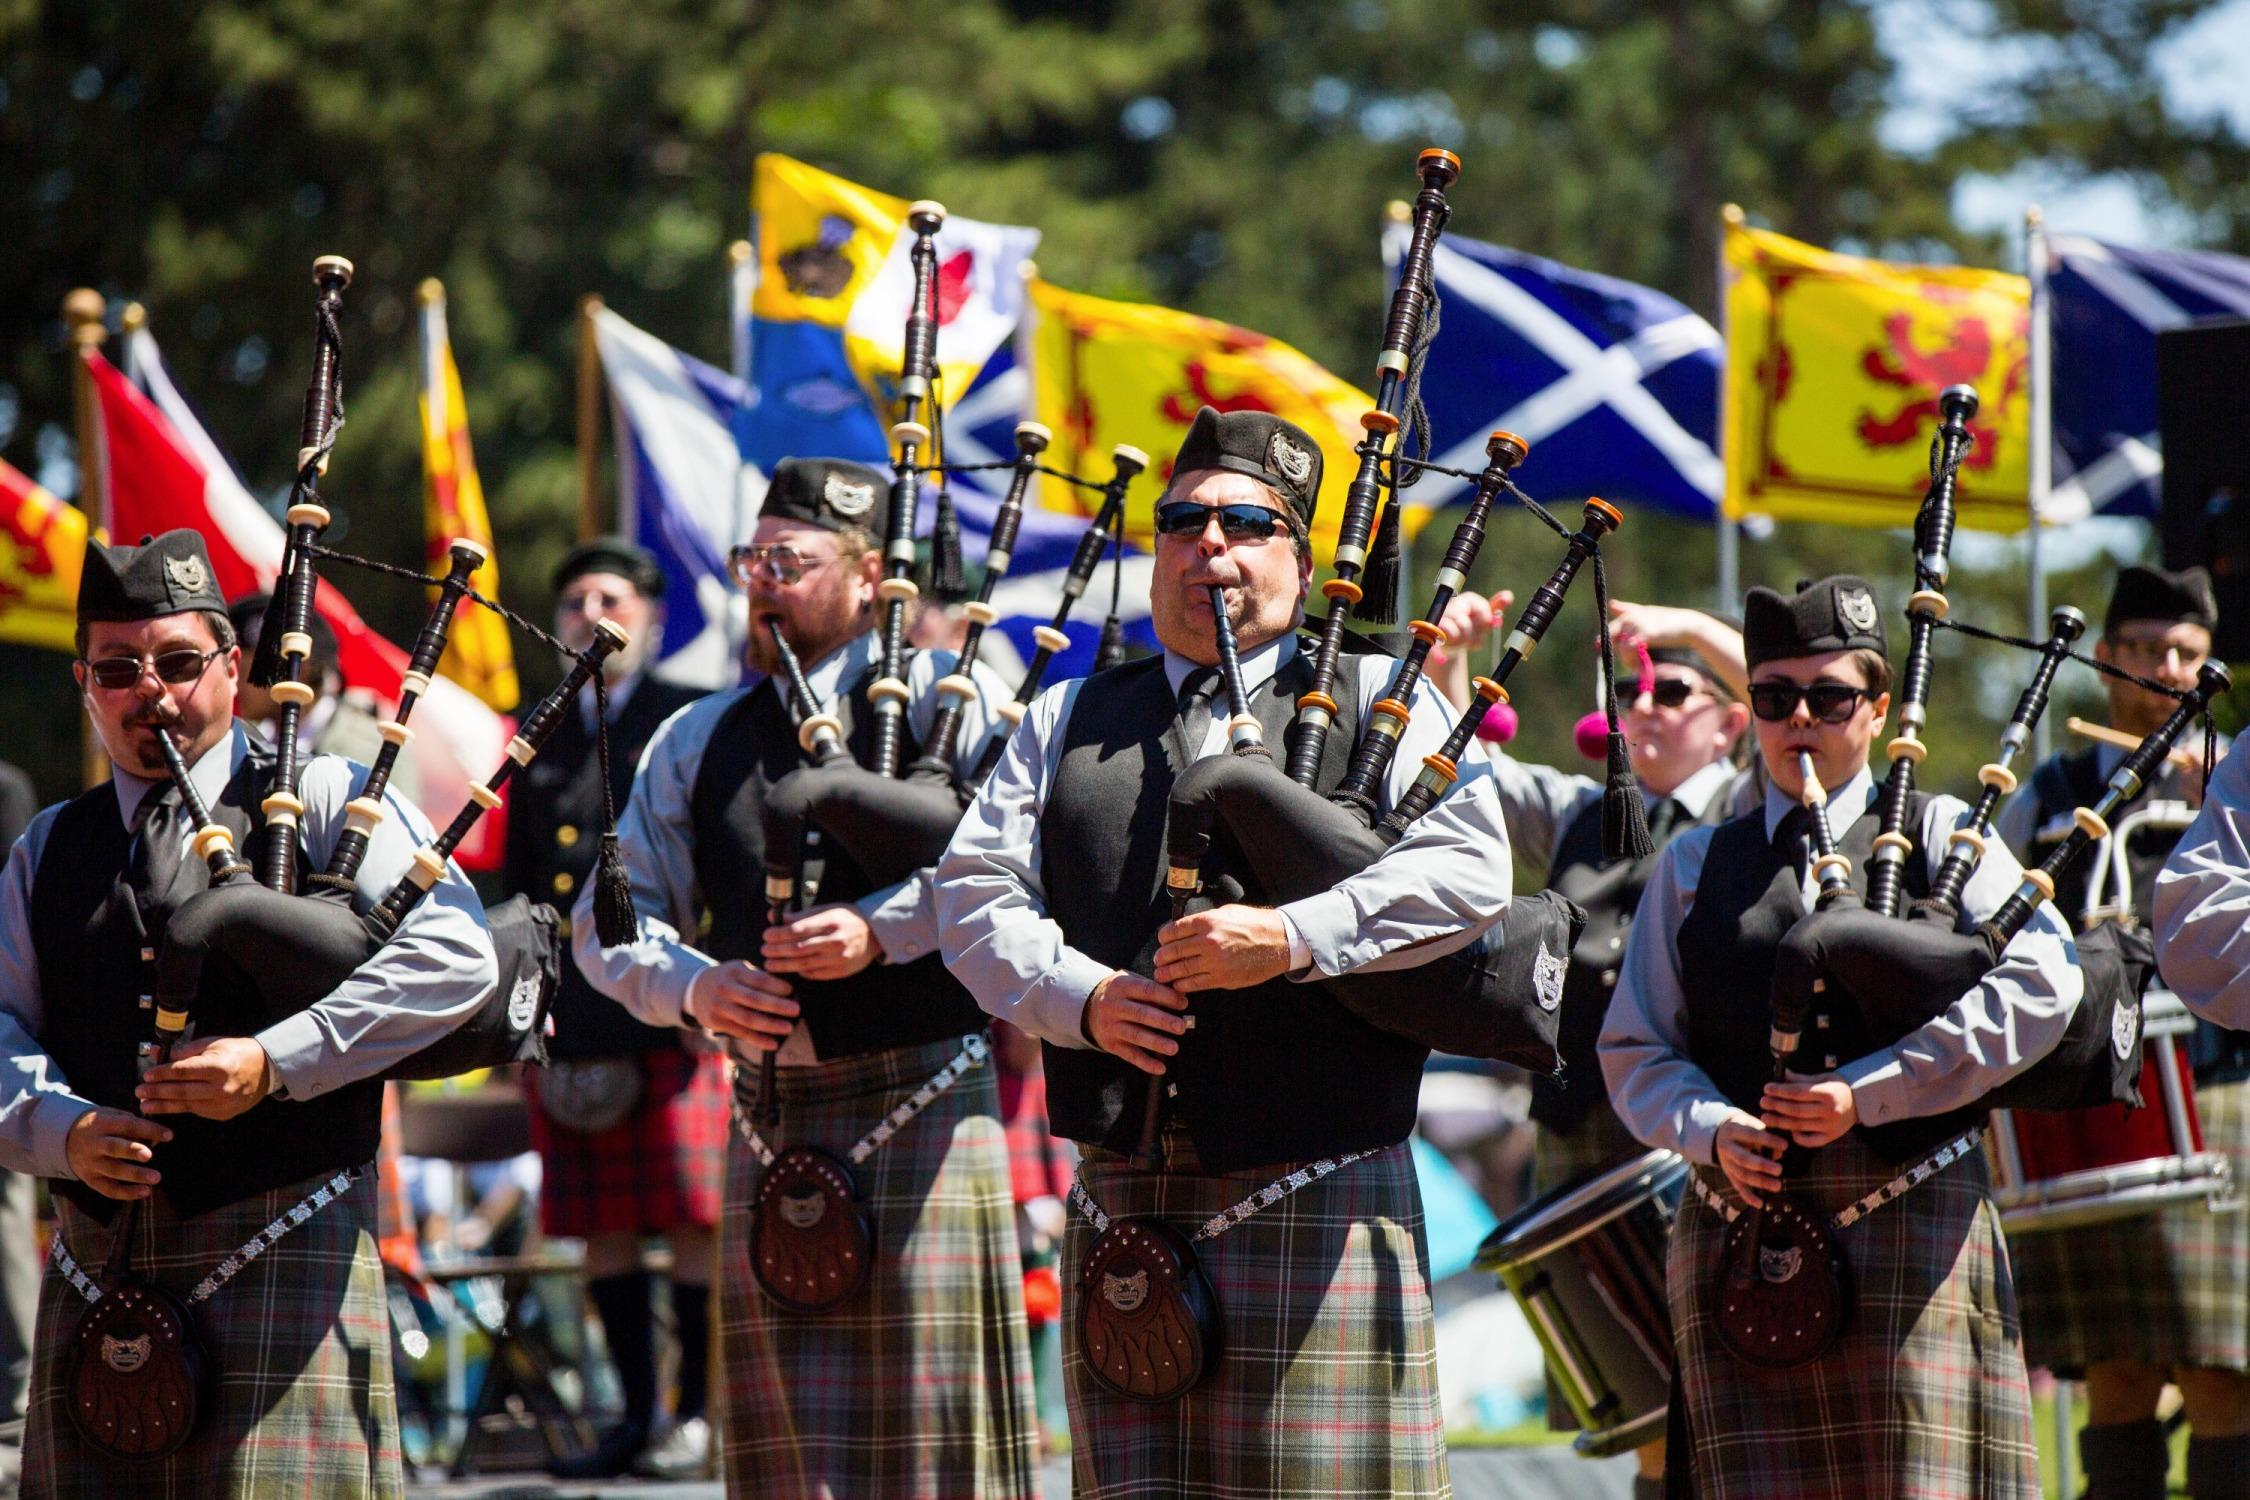 Bagpipers play the Welcome Ceremony at the Portland Highland Games in Gresham, Oregon, Saturday, July 15, 2017.